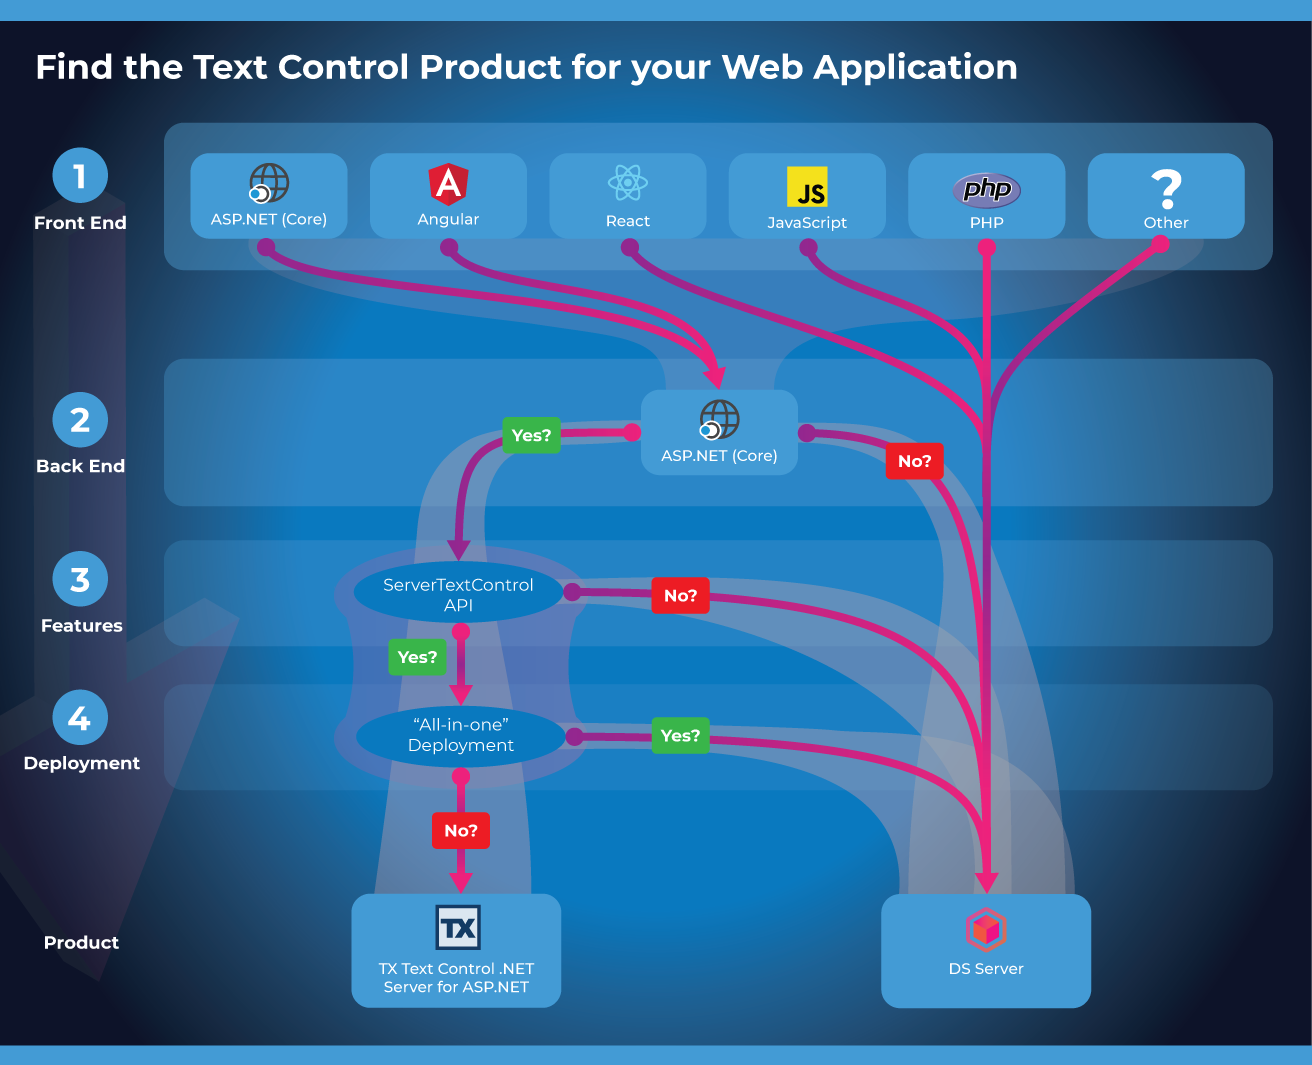 Find the right Text Control Product